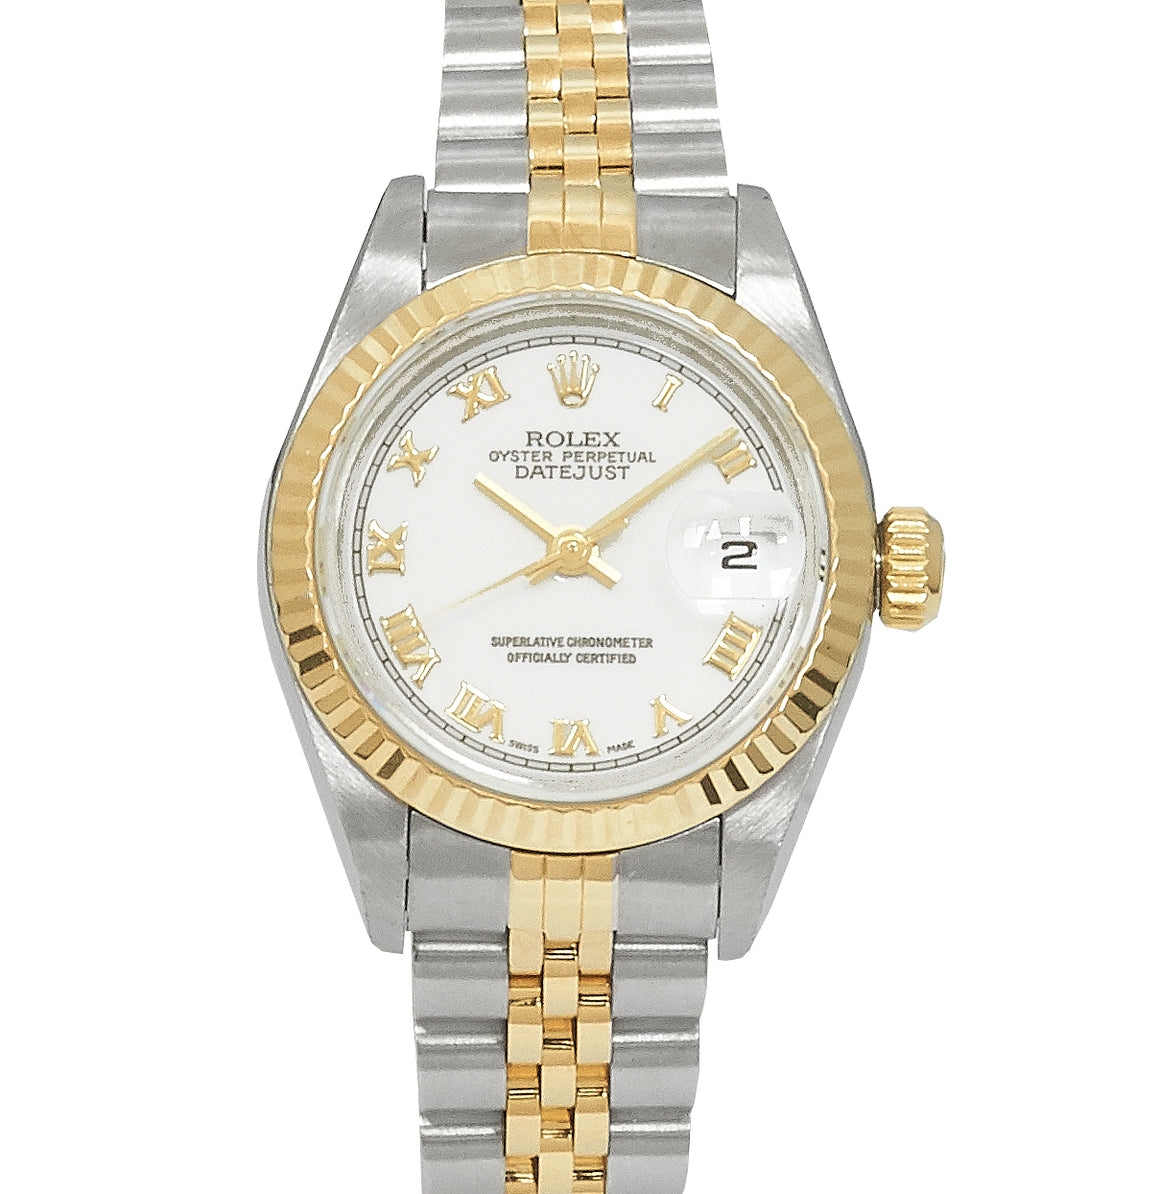 Rolex Ladies Datejust Steel & Gold, White Roman Numeral Dial. Ref: 69173 (1999)